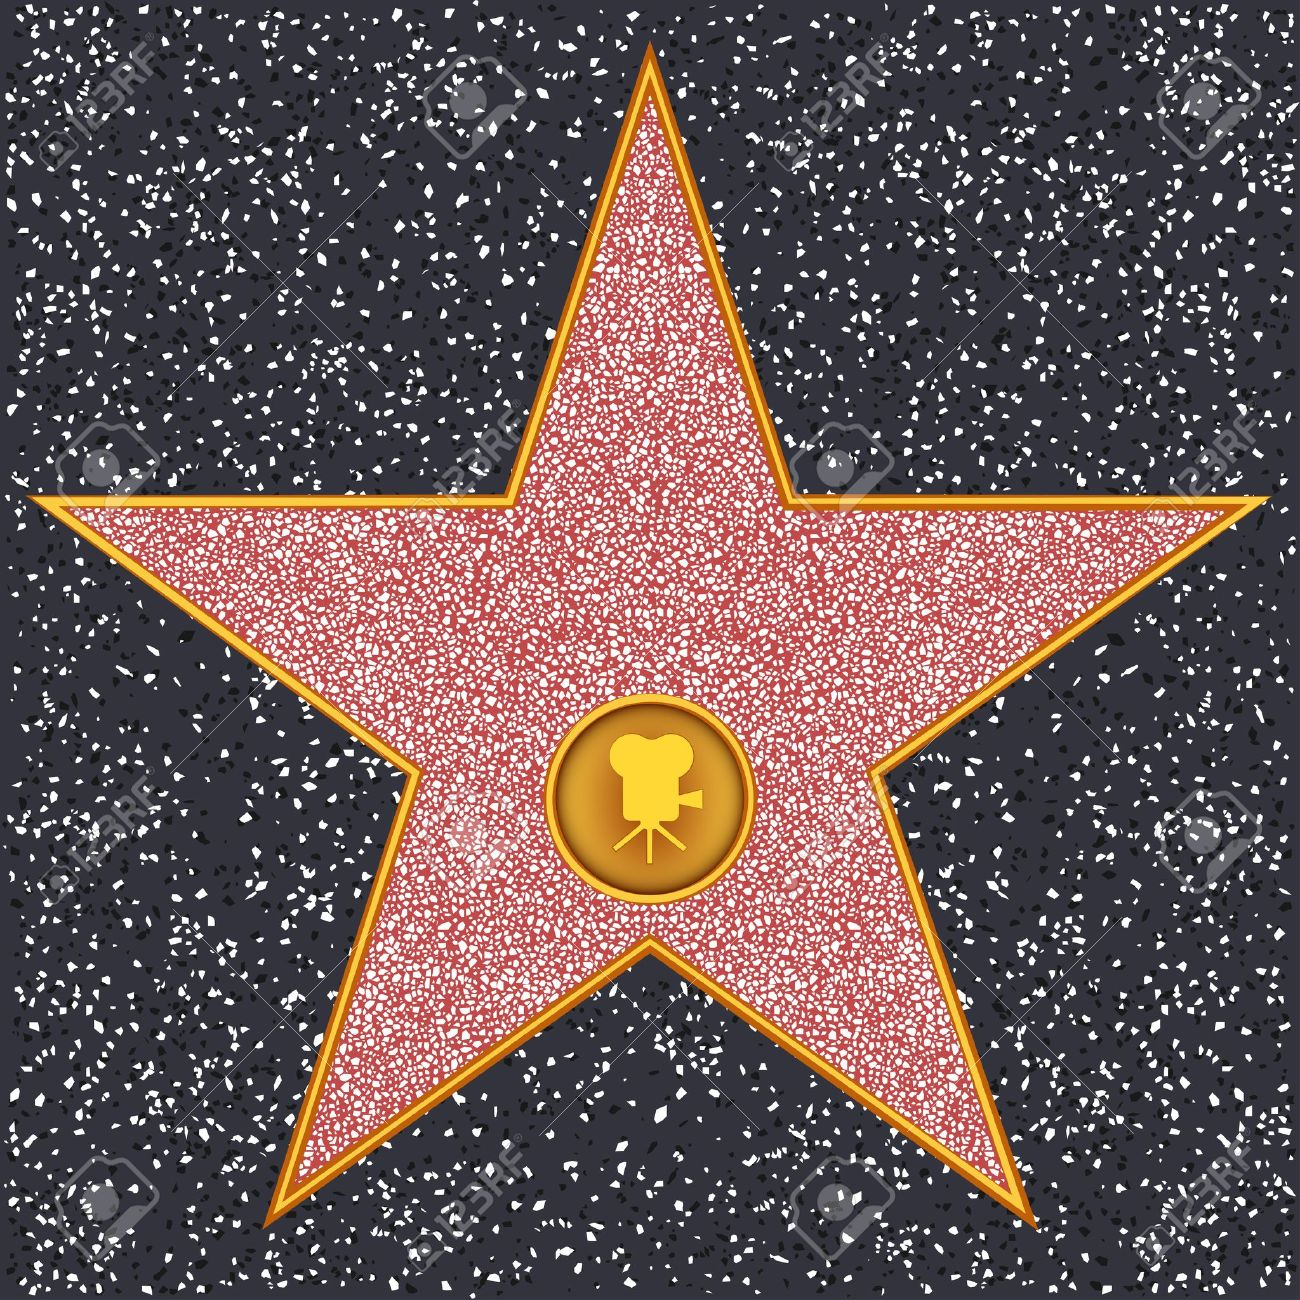 walk of fame clipart clipground hollywood walk of fame star clipart Star Border Clip Art